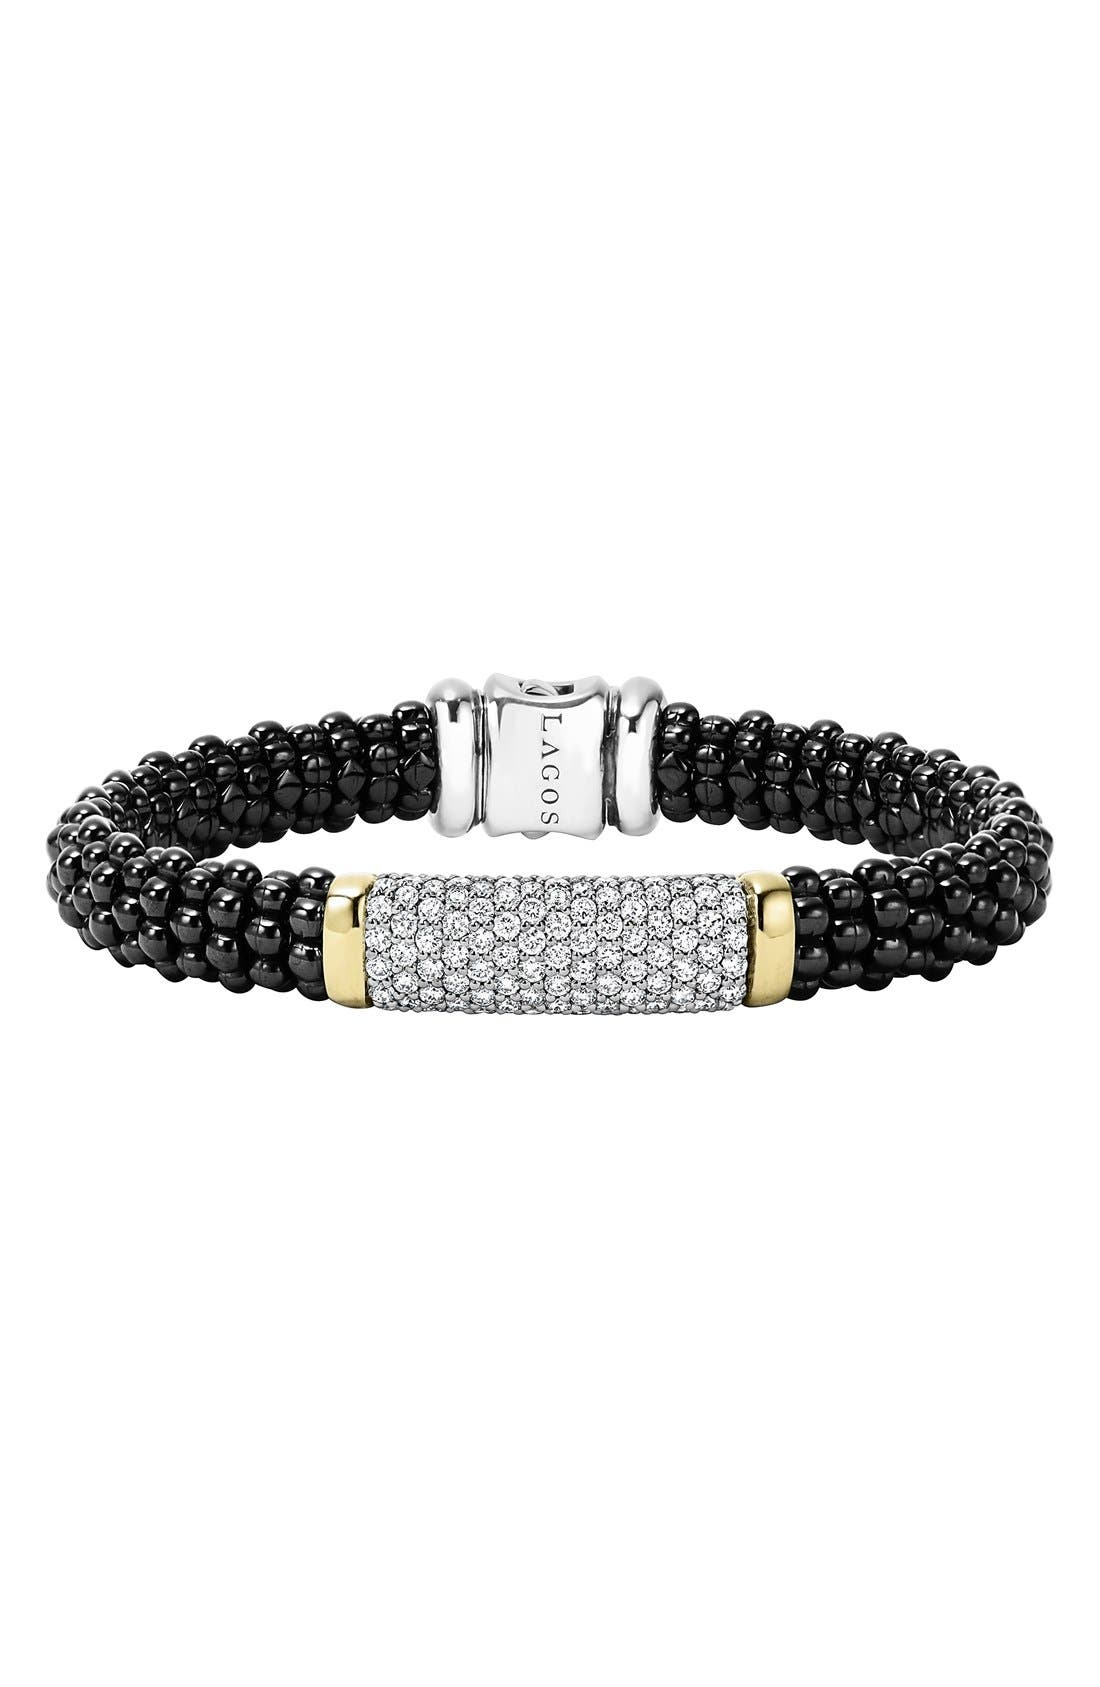 'Black Caviar' Diamond Rope Bracelet,                         Main,                         color, BLACK CAVIAR/ GOLD